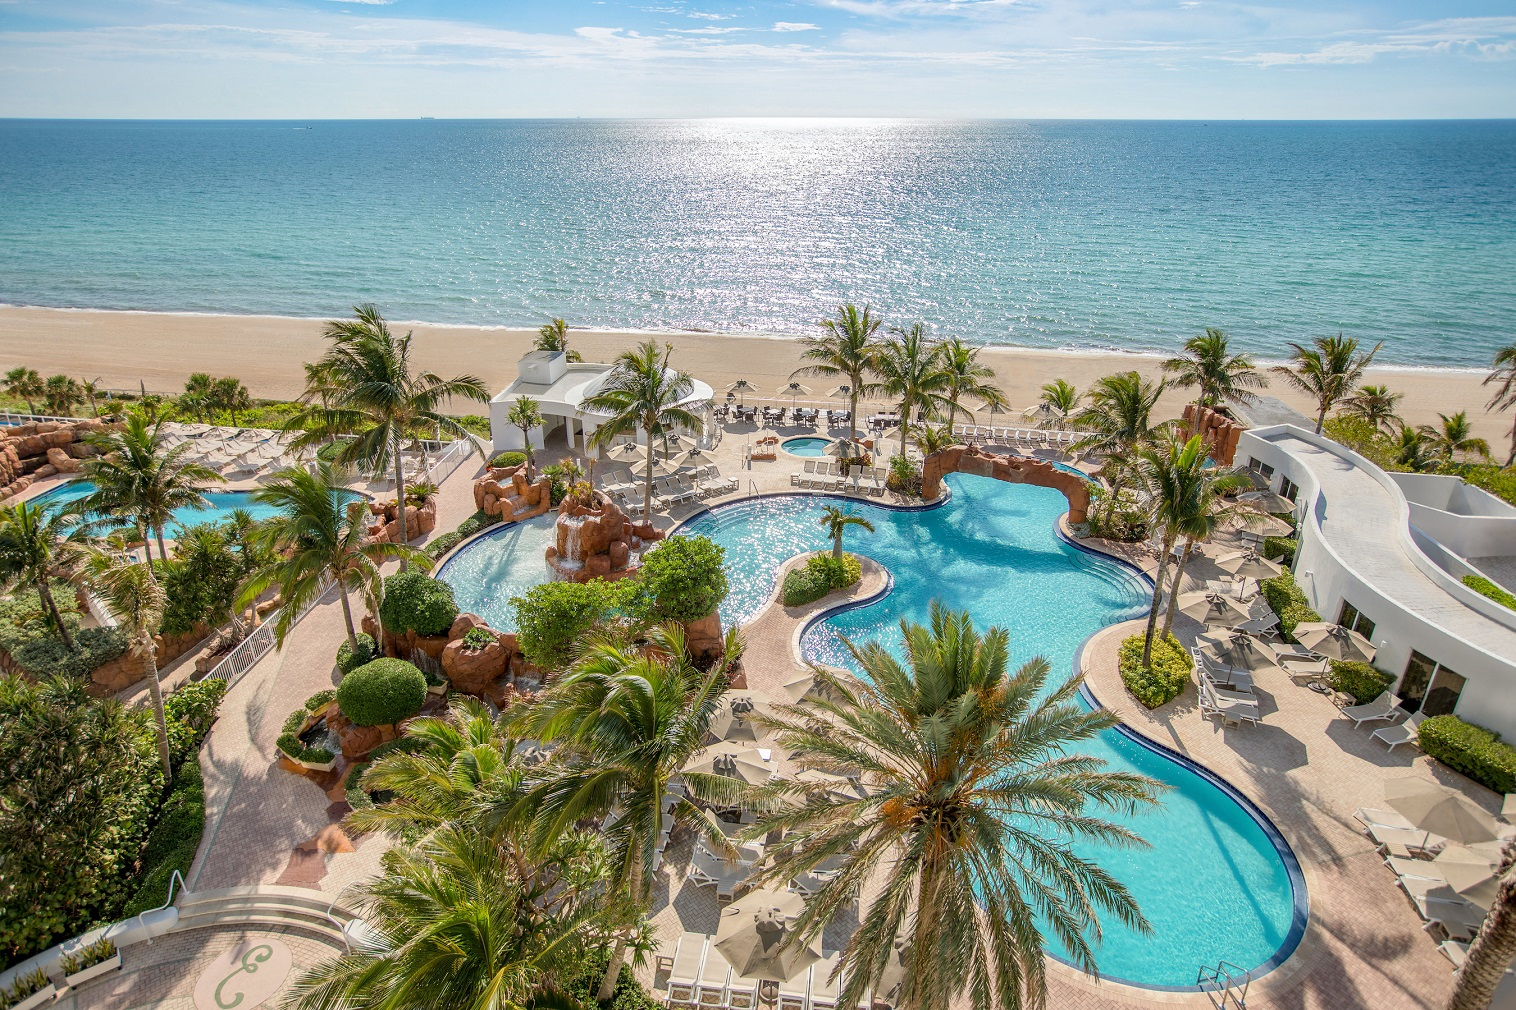 The iconic Trump International Beach Resort Miami, located on famed Sunny Isles Beach, has announced its 2020 Black Friday Sale.